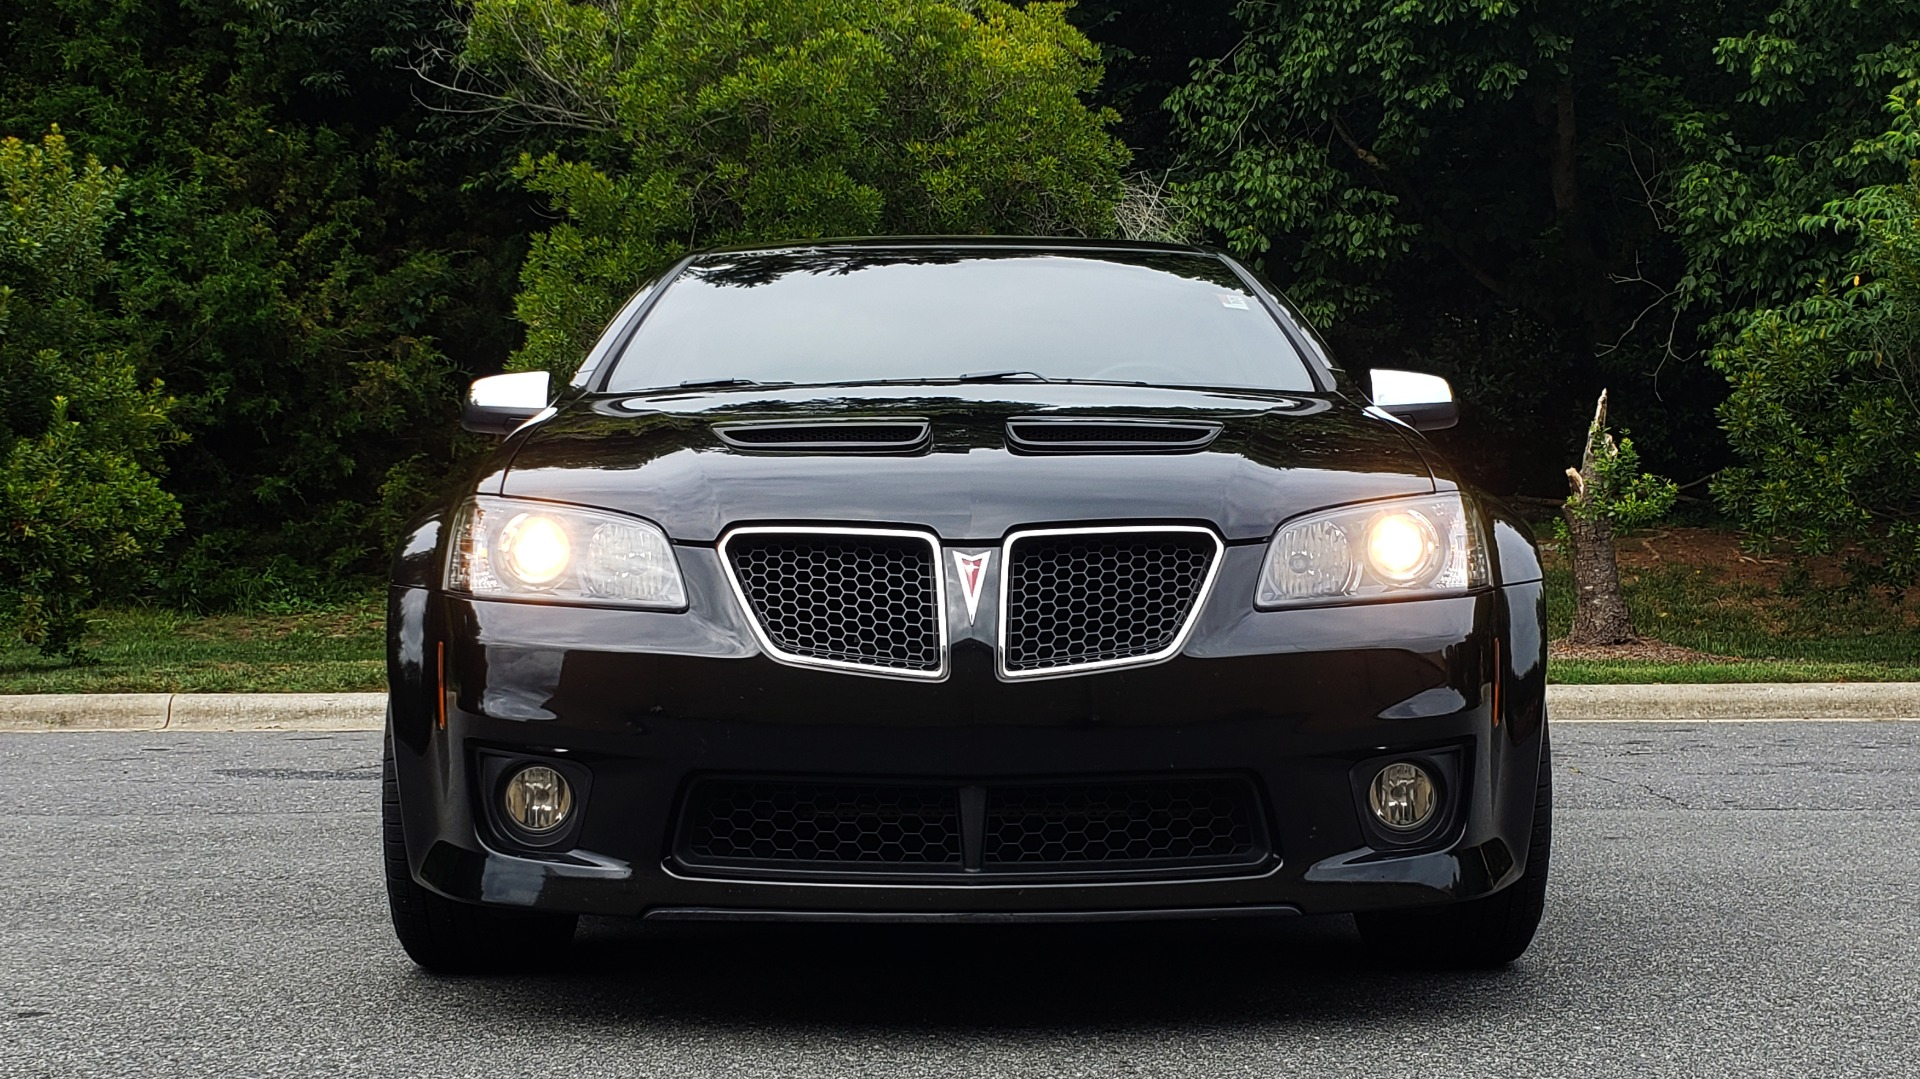 Used 2009 Pontiac G8 GXP / 6.2L LS3 V8 / 6-SPD AUTO / SUNROOF / 19IN WHEELS for sale Sold at Formula Imports in Charlotte NC 28227 26